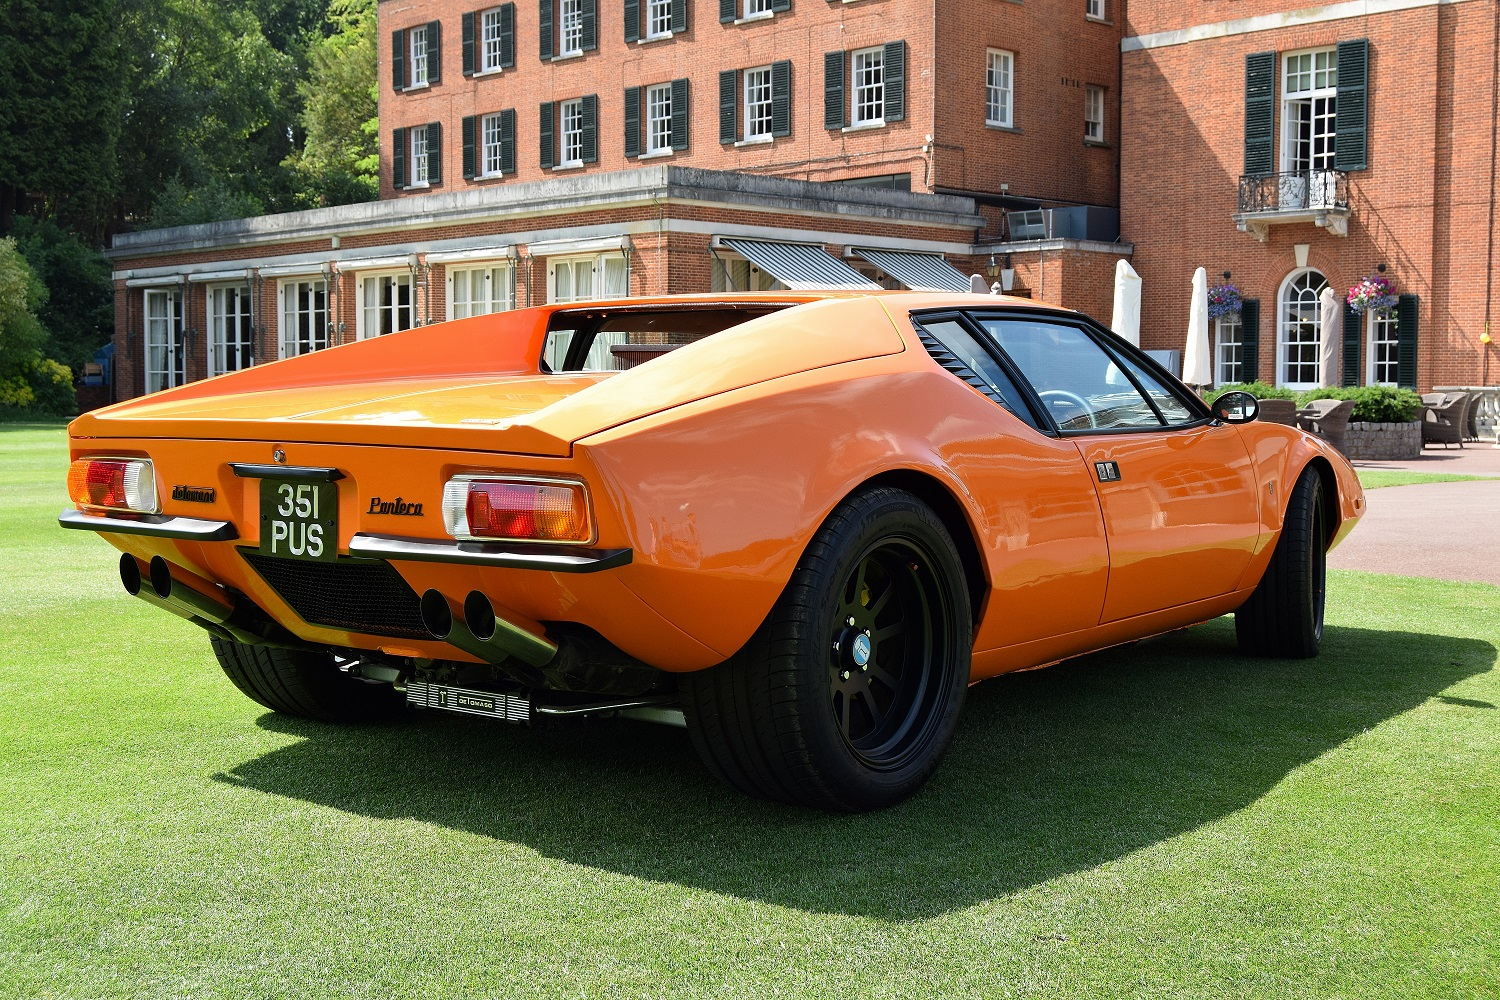 Rear quarter view of the Pantera